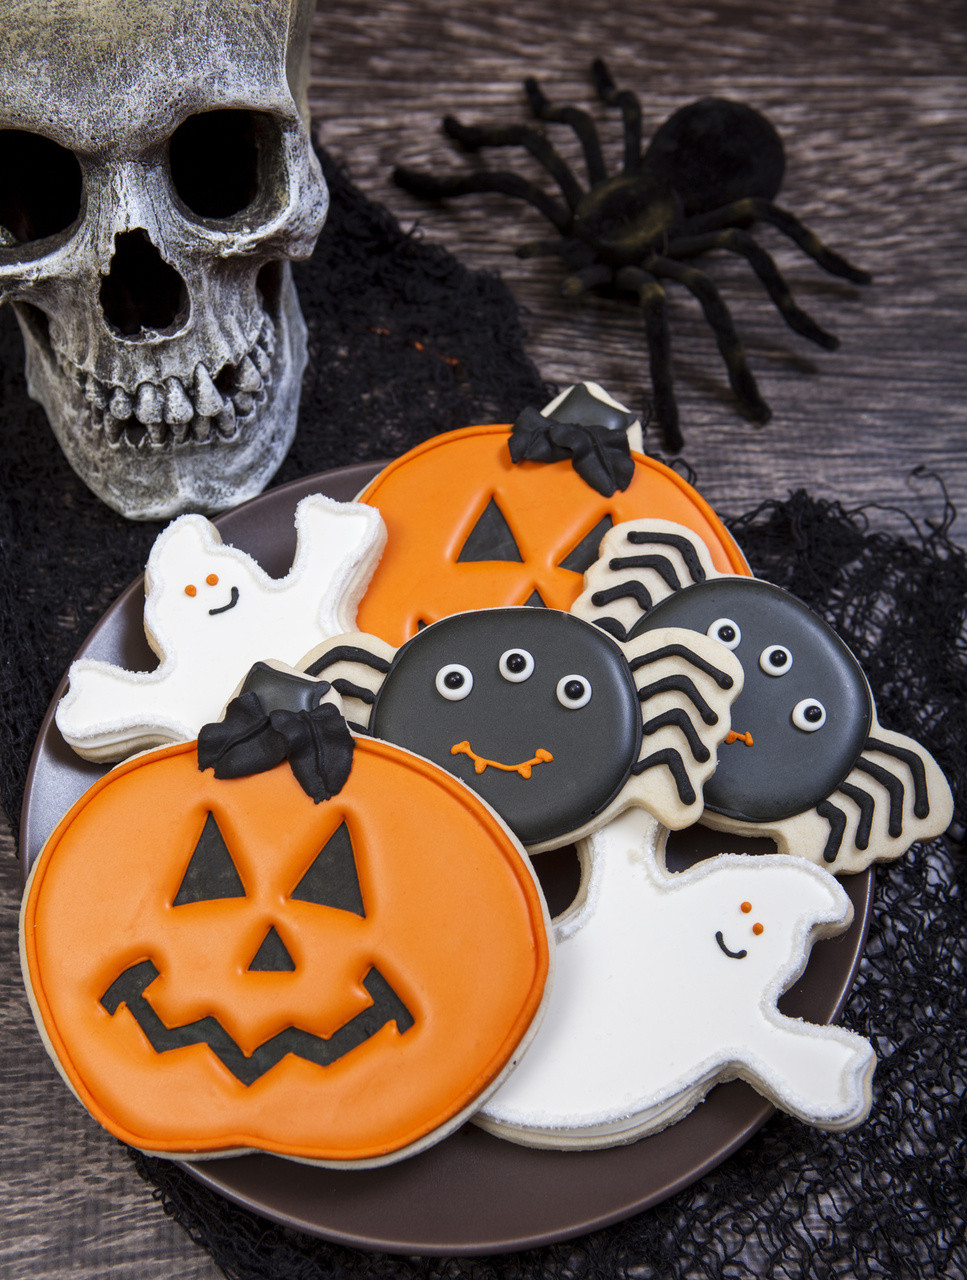 Halloween Cookies Ideas  Spooky Cookie Halloween Cookie Decorations